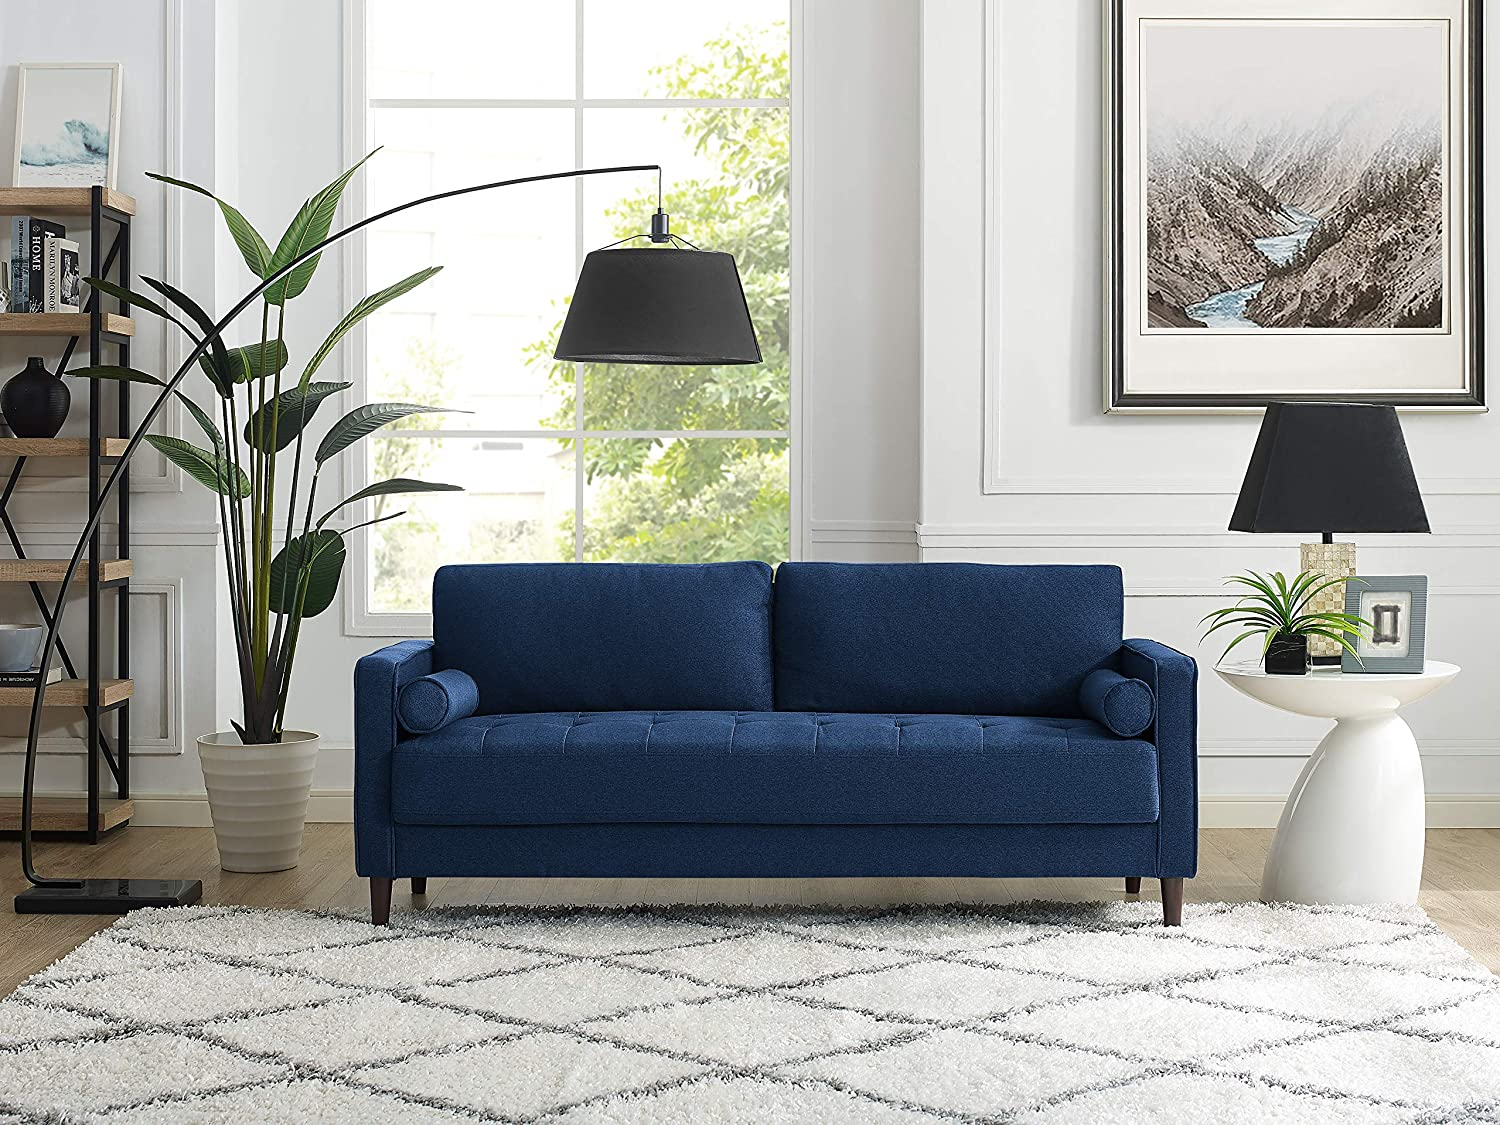 what color rug goes with a blue couch